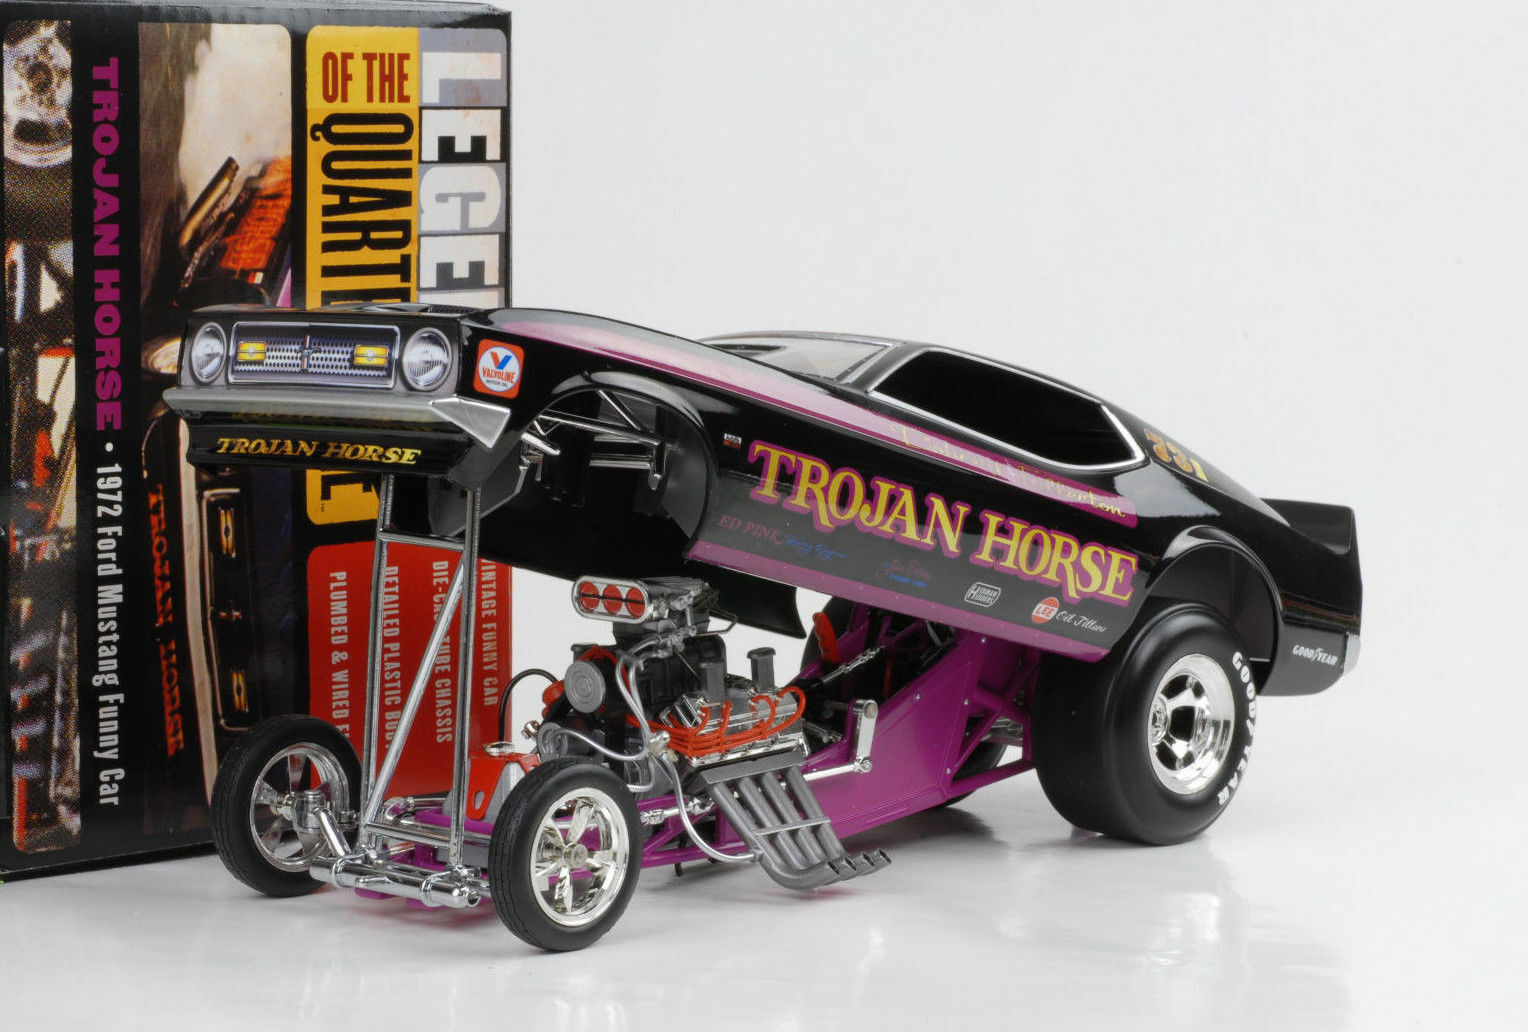 1972 Ford Mustang Trojan Horse Q- Mile Dragster Diverdeente auto 1 18 Auto World